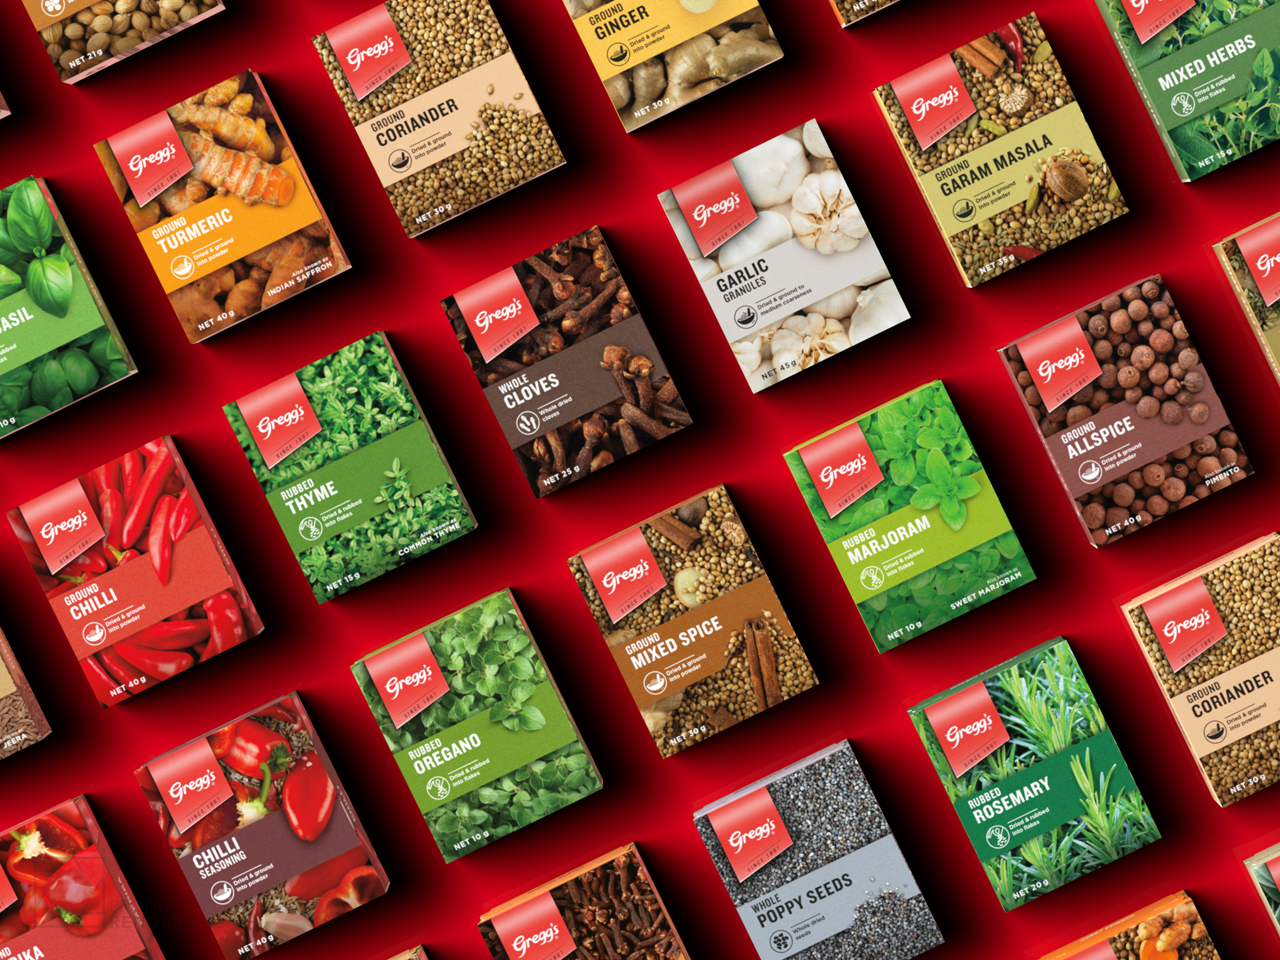 3D packaging render of Greggs' Chilli range of herbs & spices